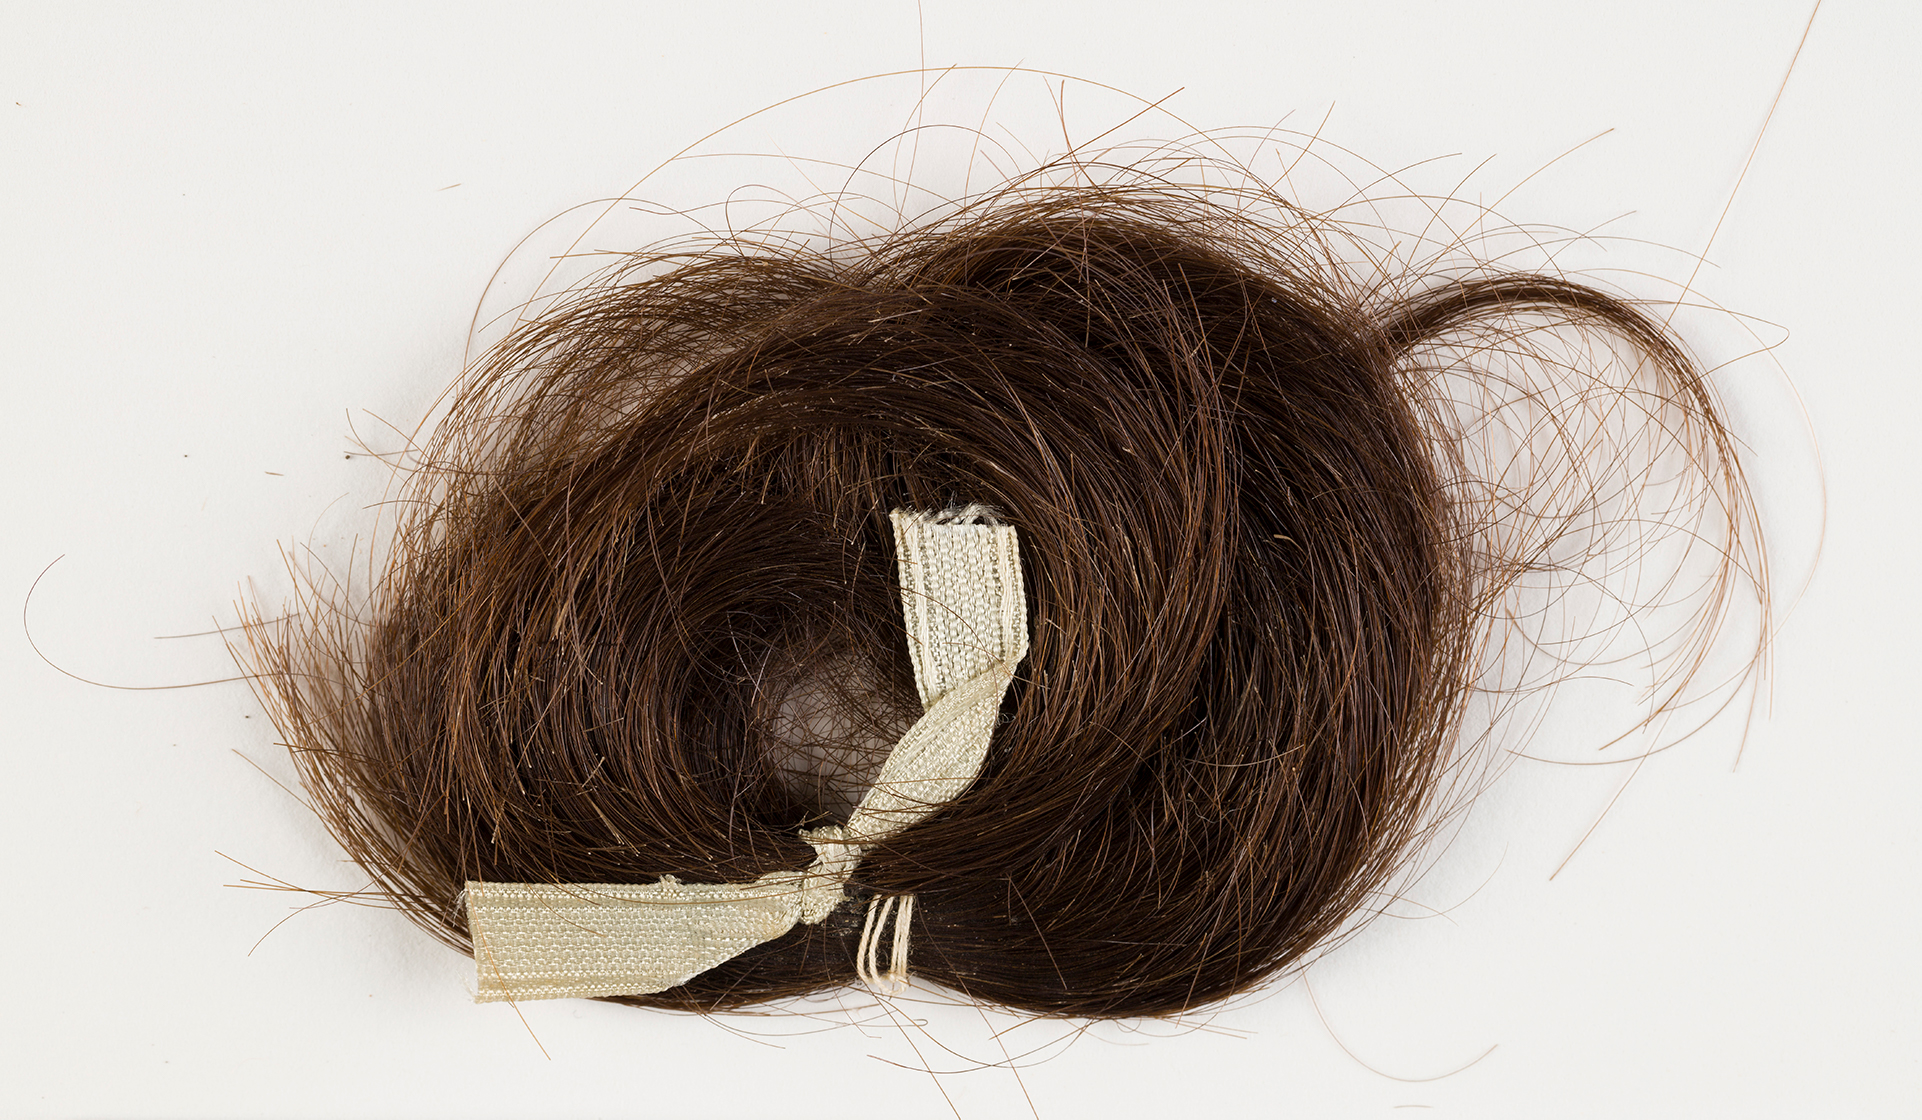 A lock of reddish brown hair, tied with a white ribbon.